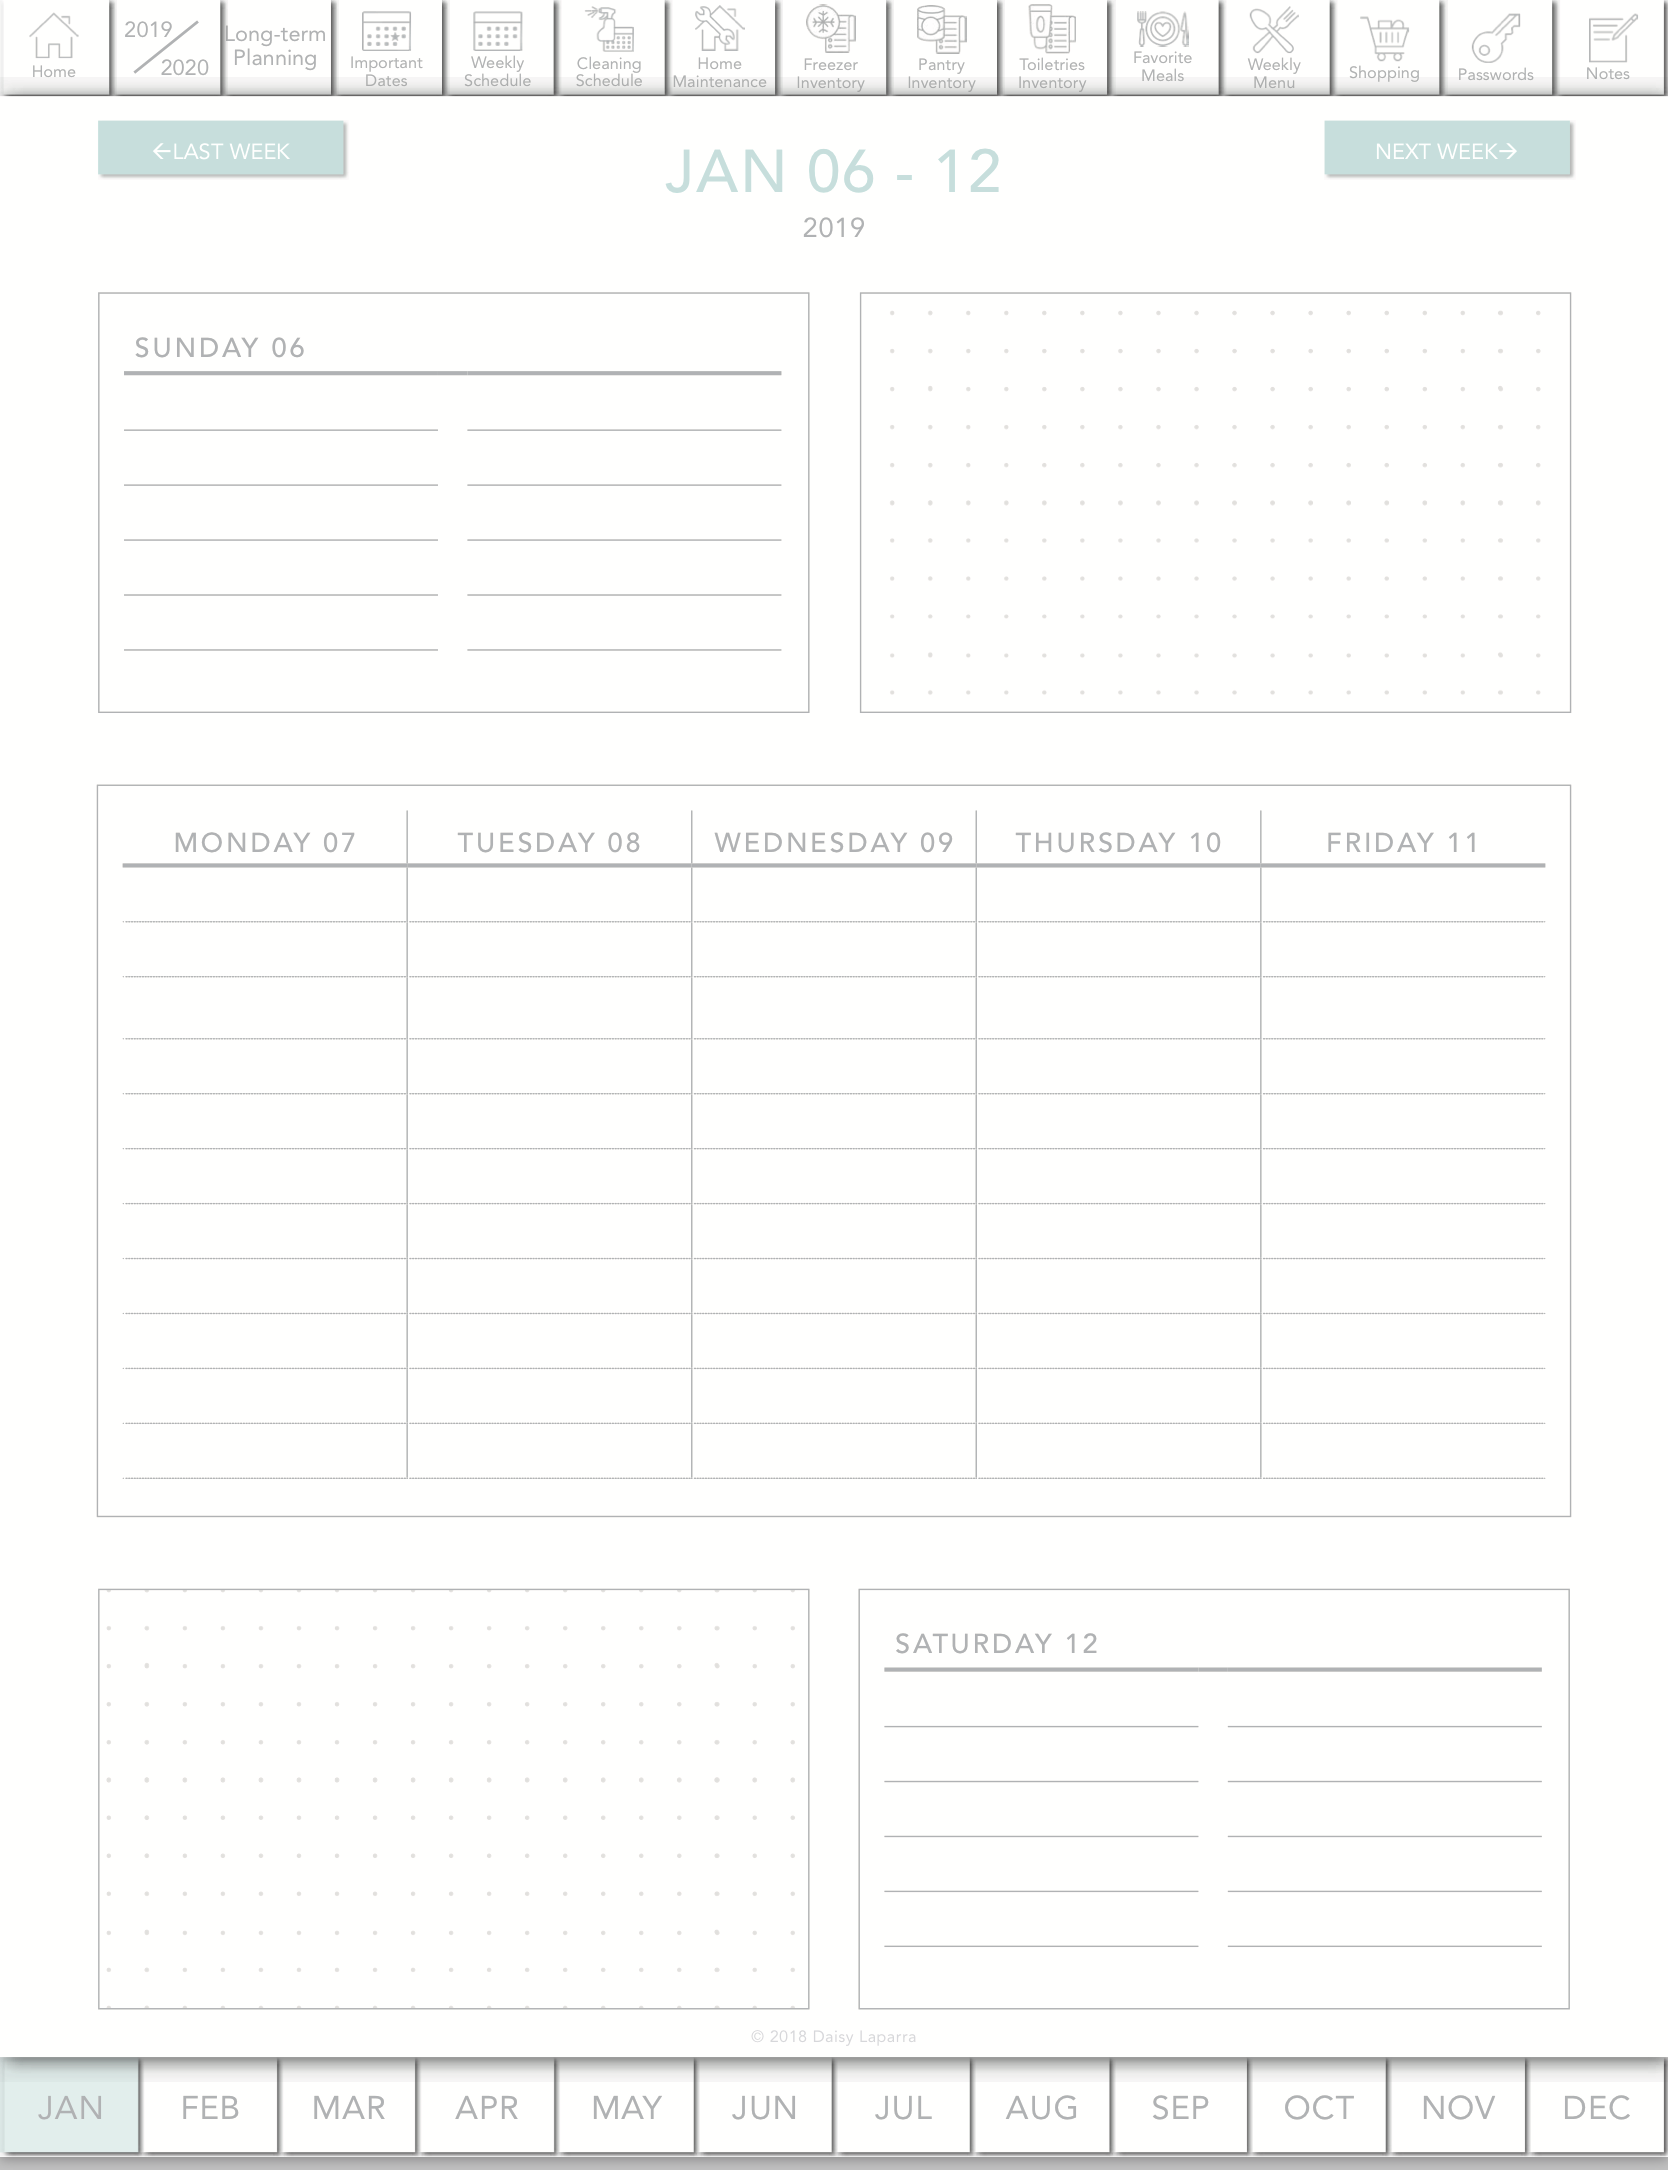 Weekly layout for digital planner with hyperlinks